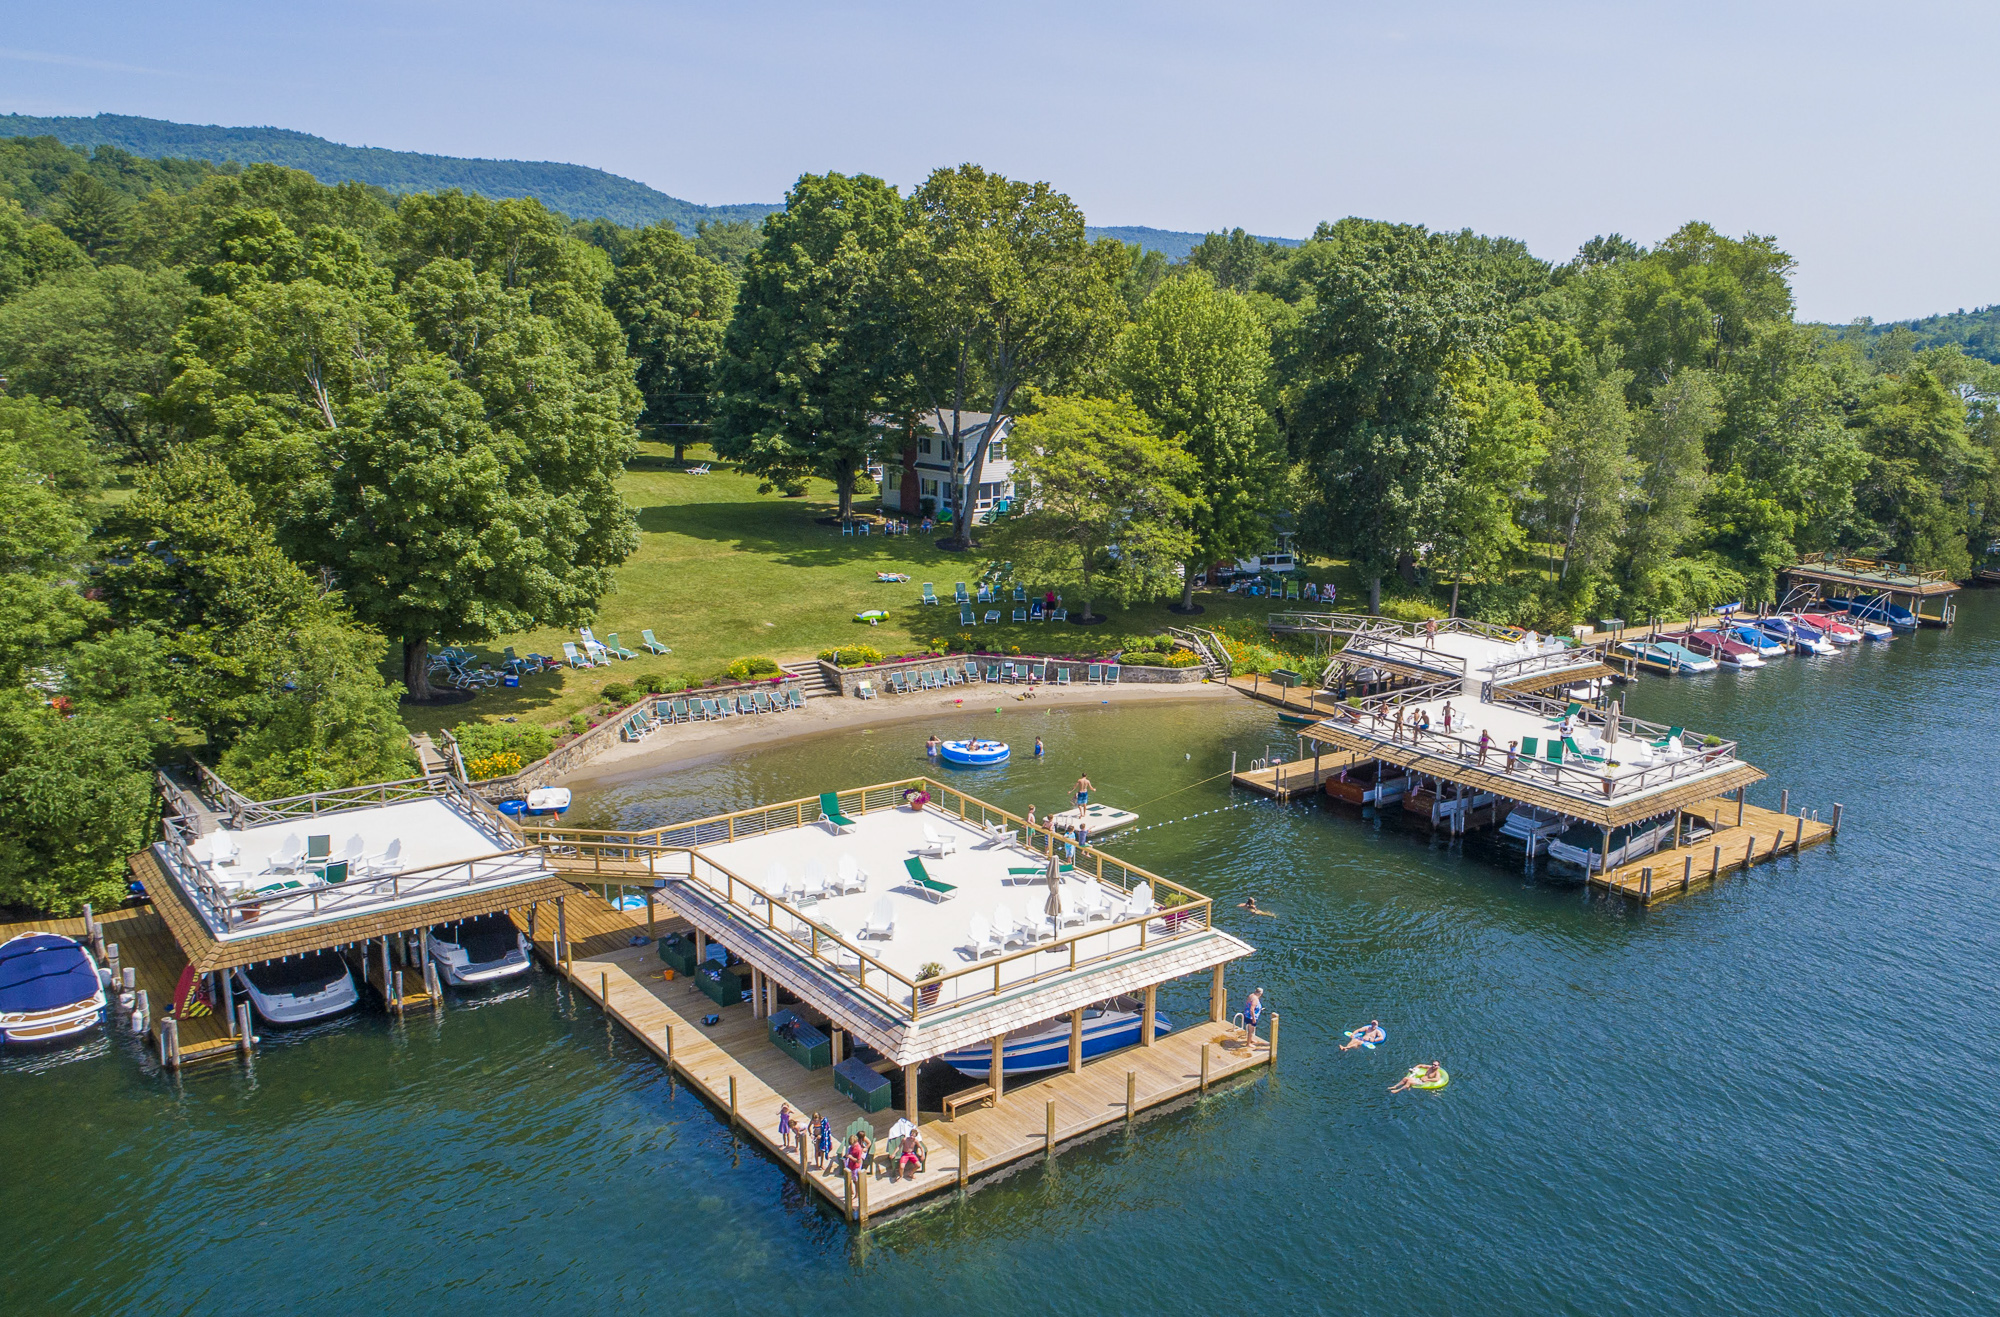 Lake George vacation cabin rentals with boathouse sundecks, private sandy beach, spacious lawns at Takundewide Cottages on Lake George